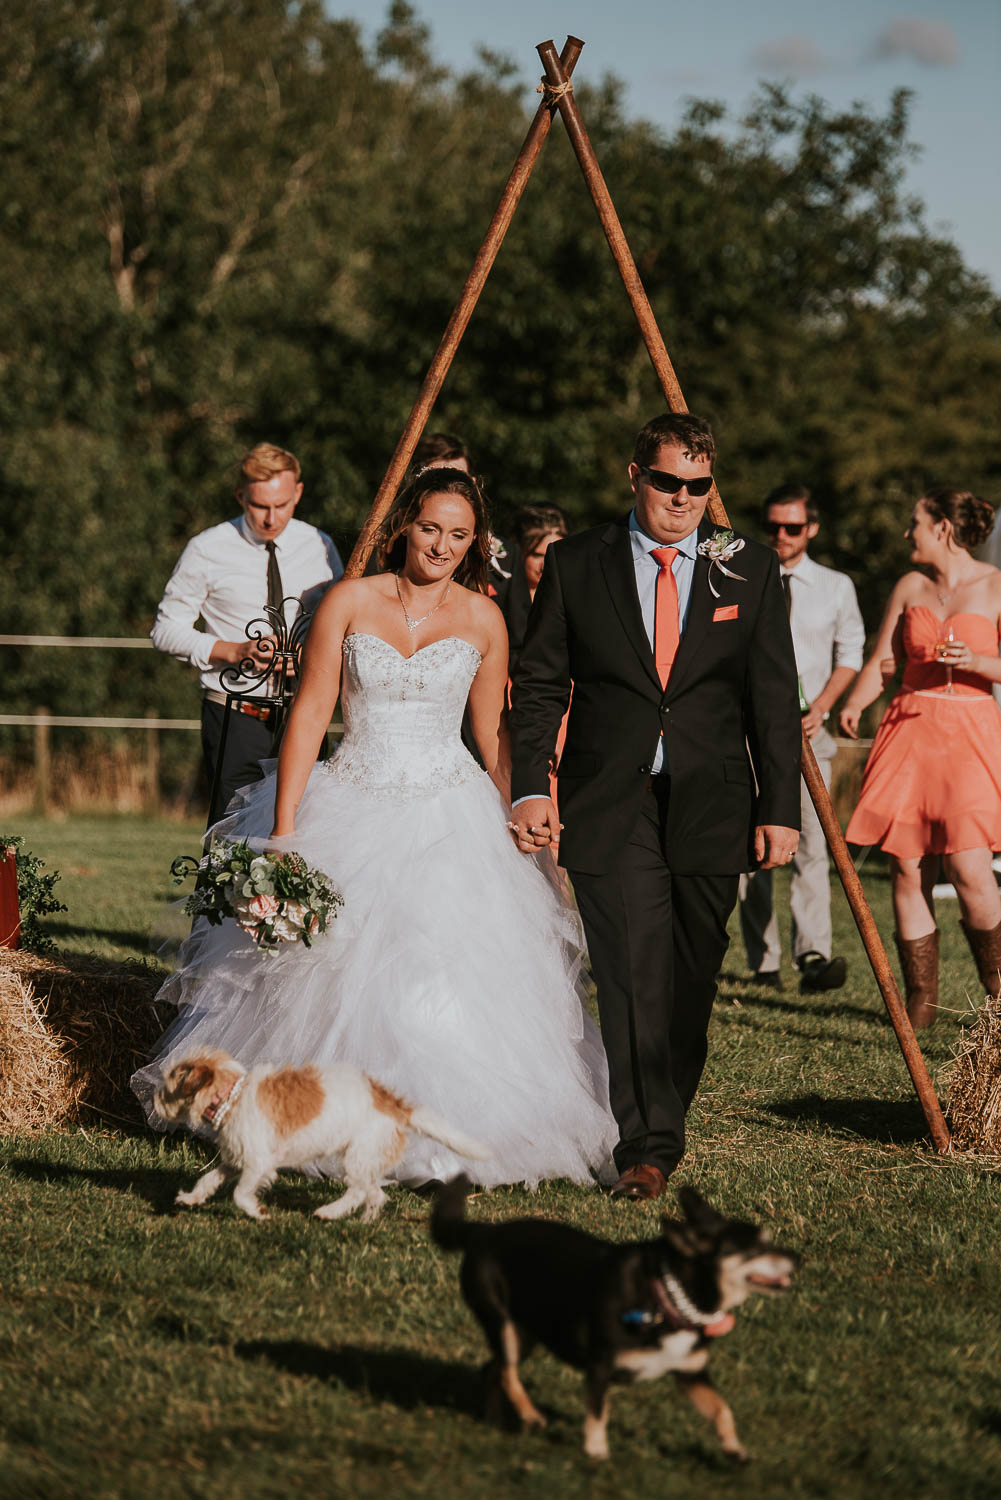 james-melinda-auckland-rustic-farm-wedding-68